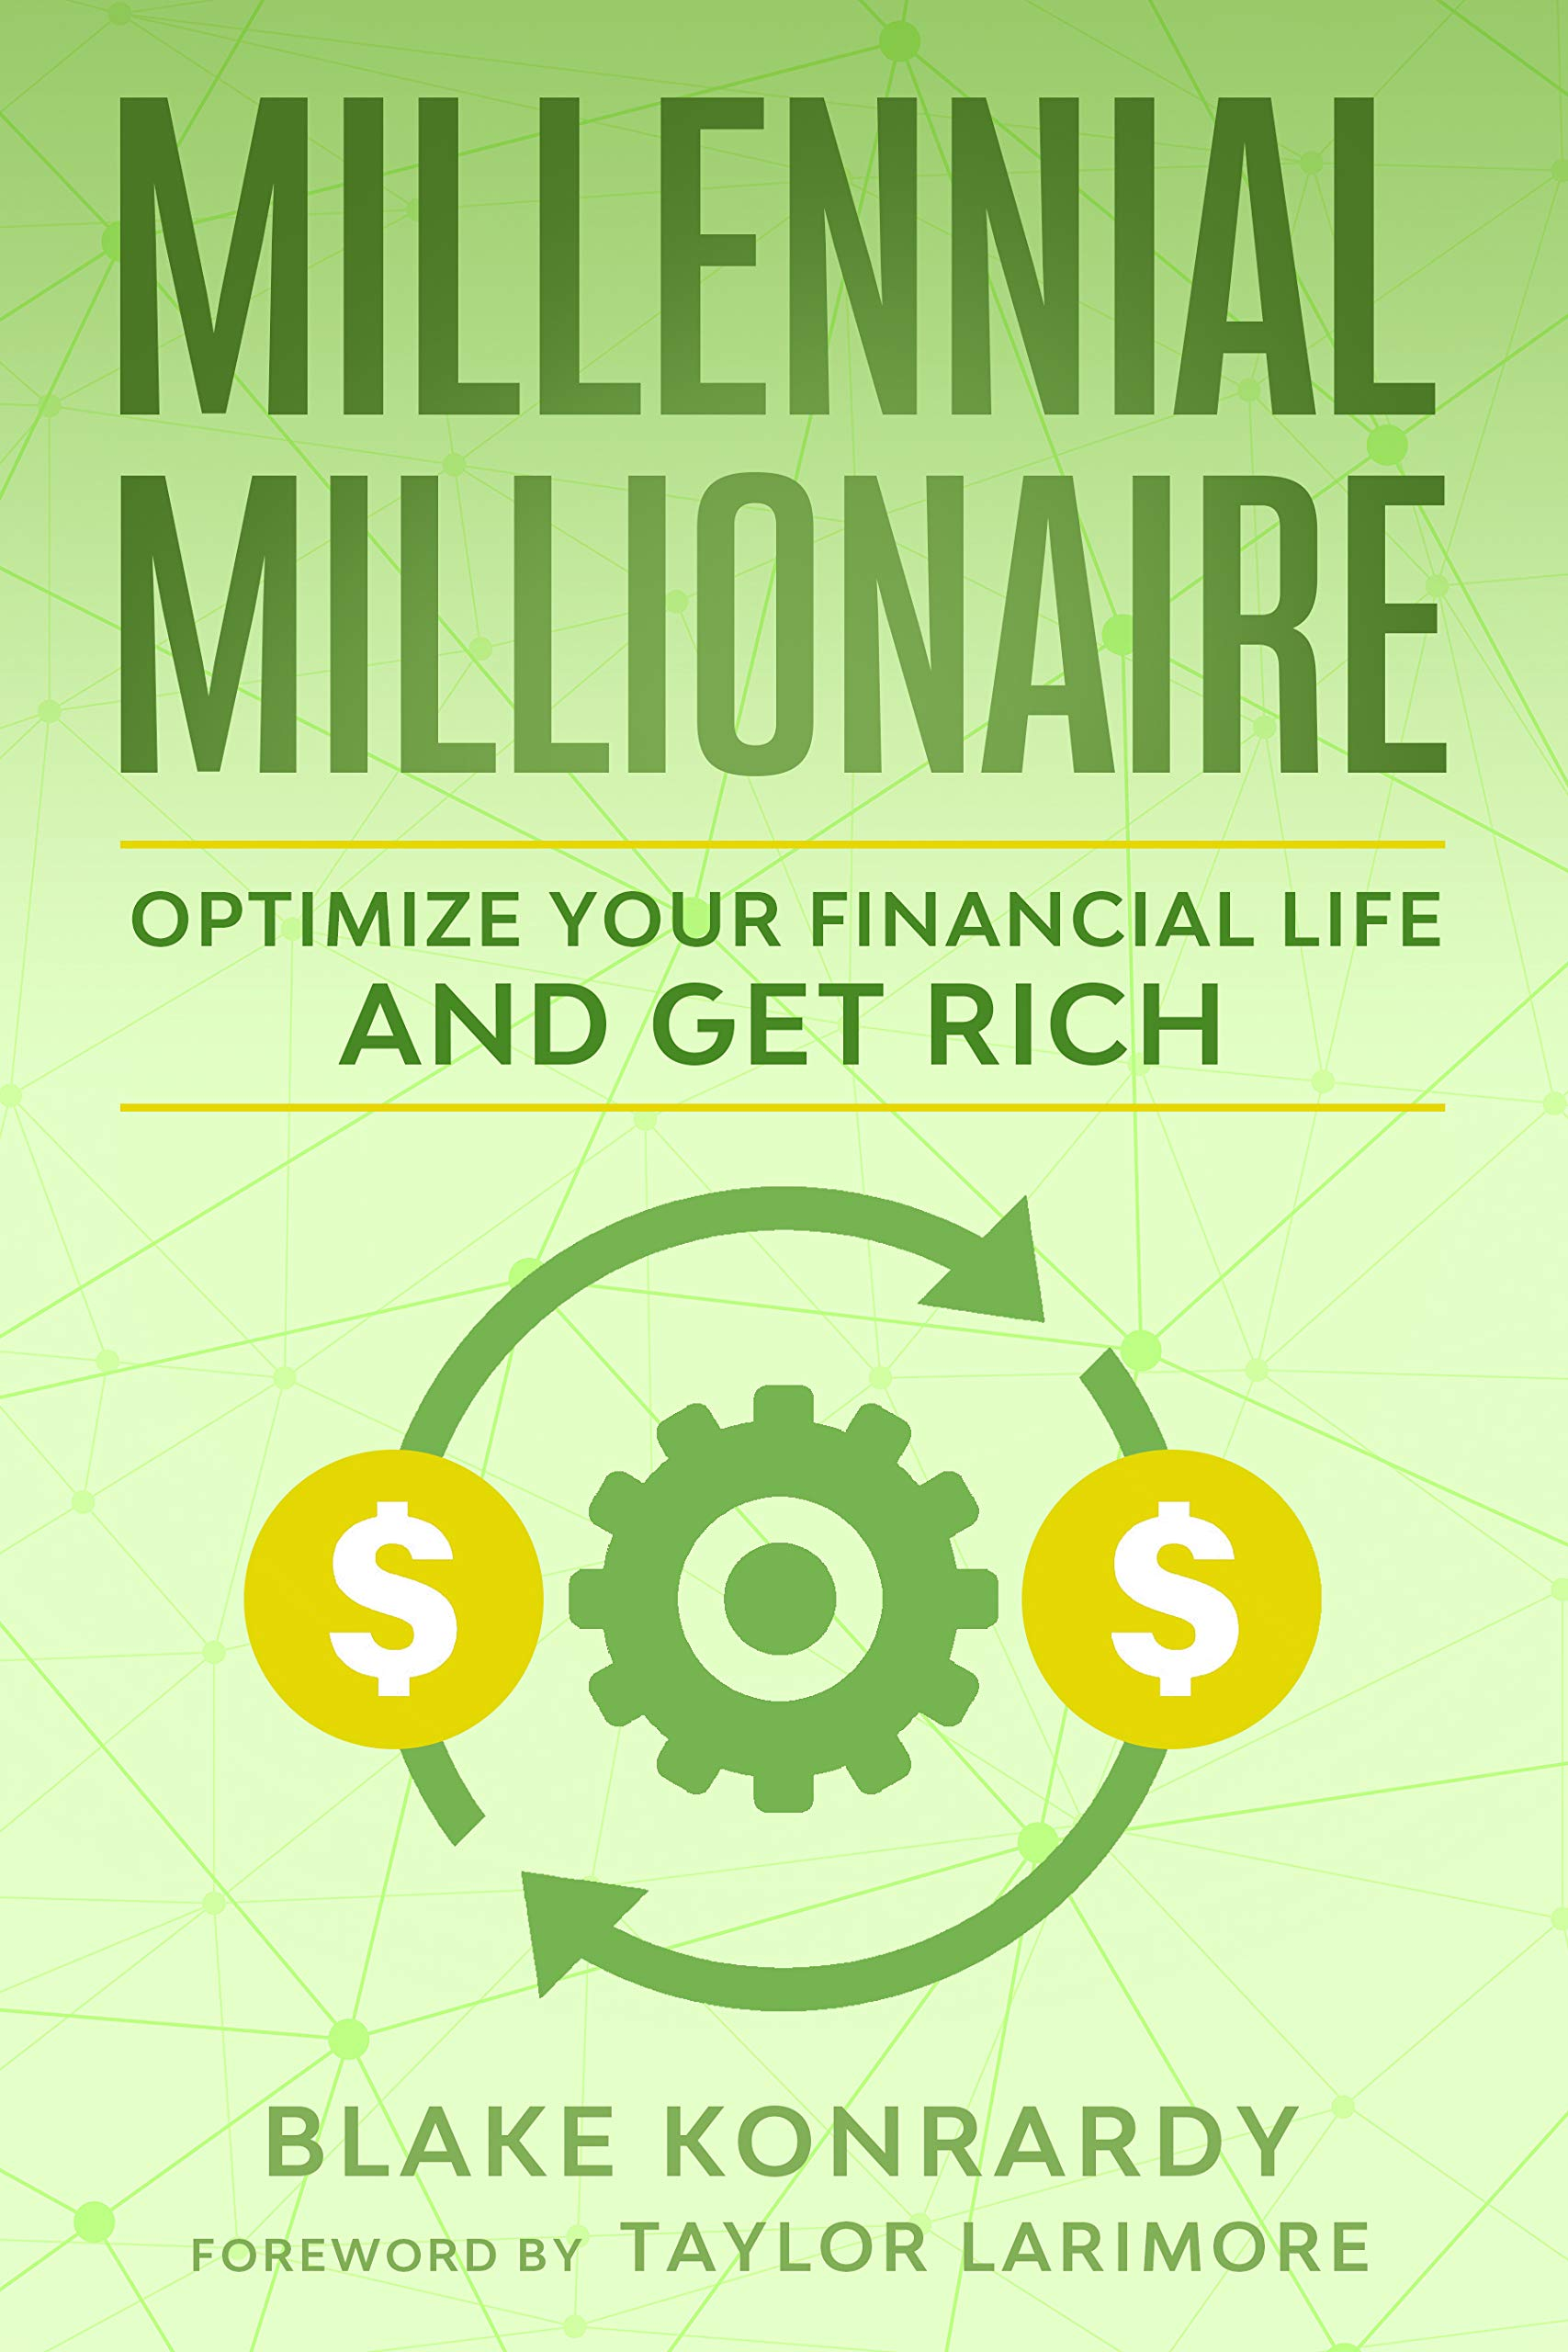 Image OfMillennial Millionaire: Optimize Your Financial Life And Get Rich